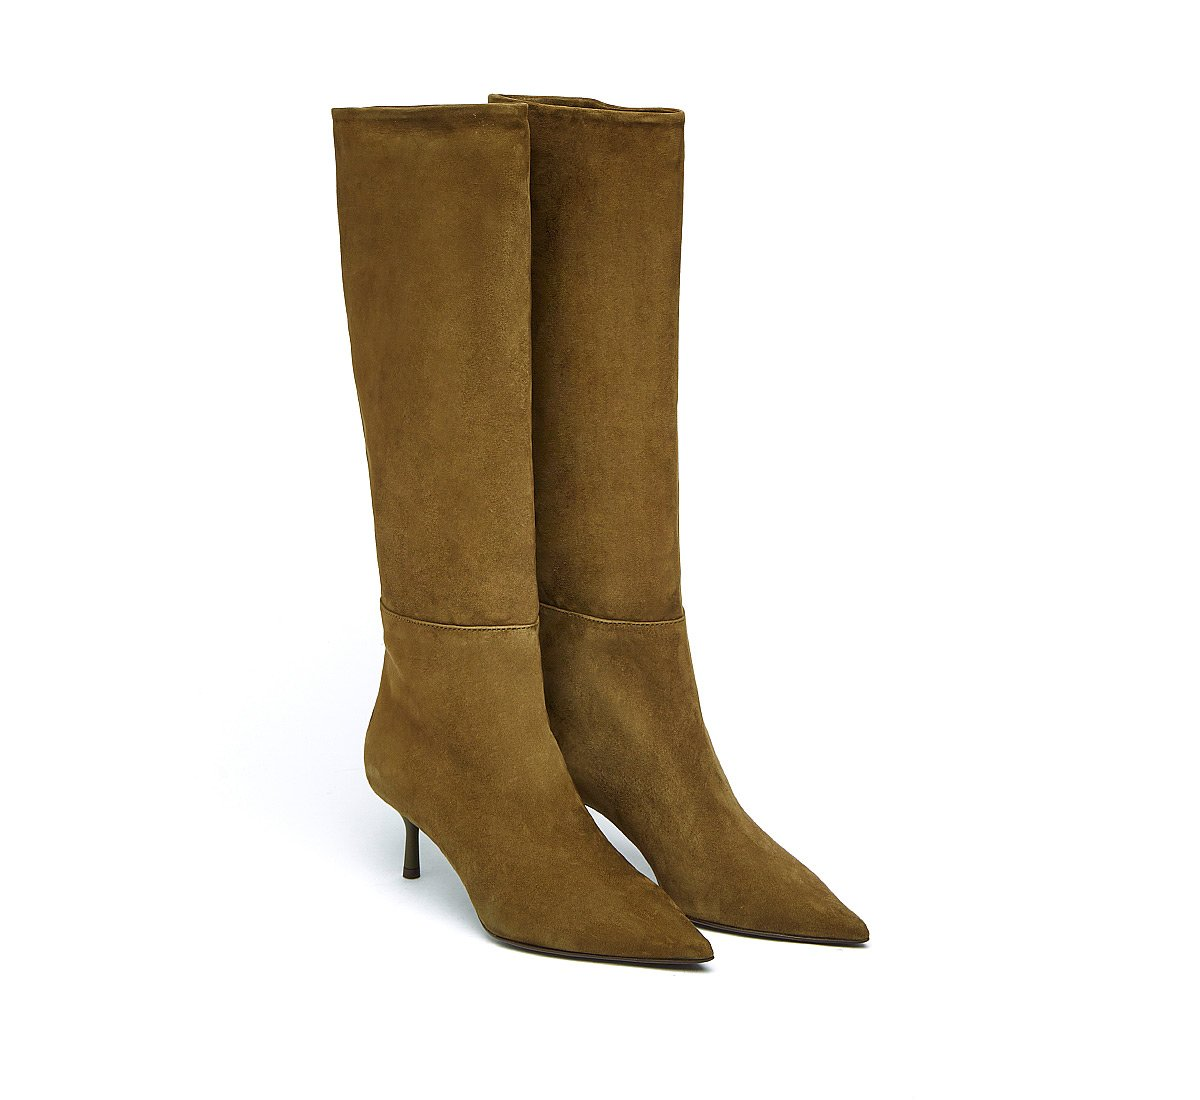 Soft suede boots